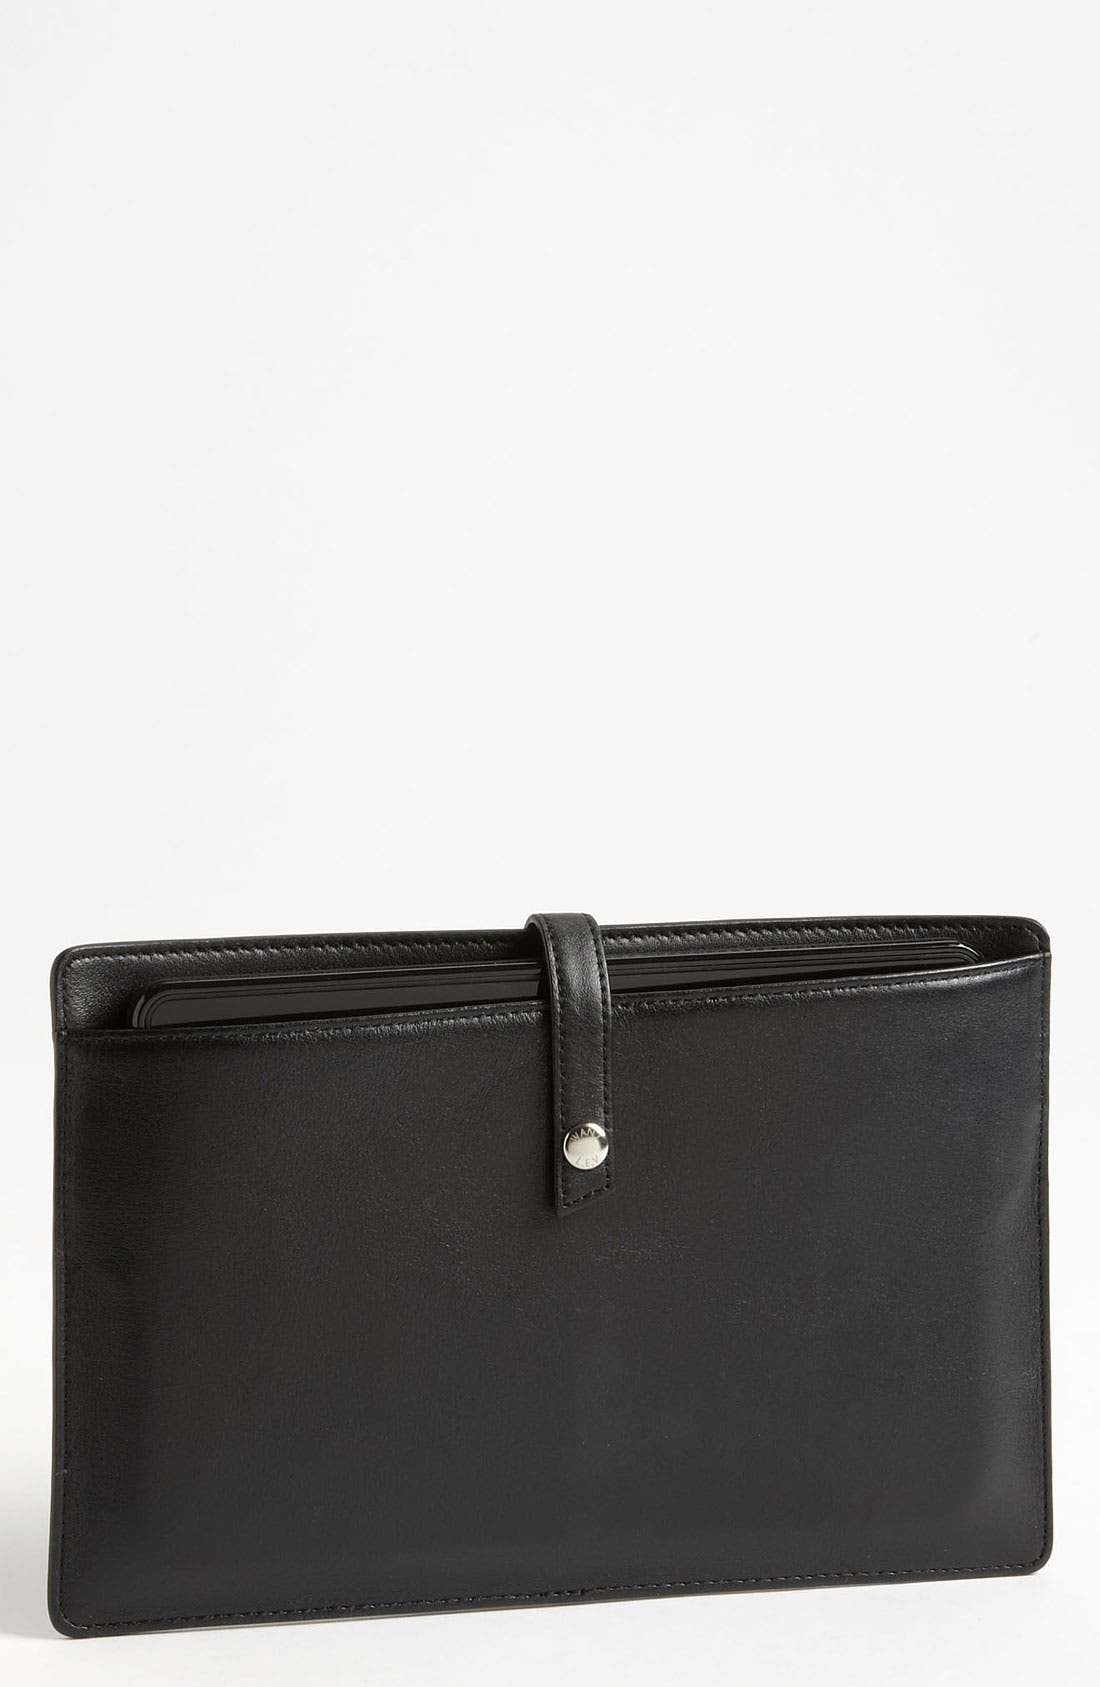 Alternate Image 1 Selected - WANT Les Essentiels de la Vie 'Cartier' Tablet Sleeve